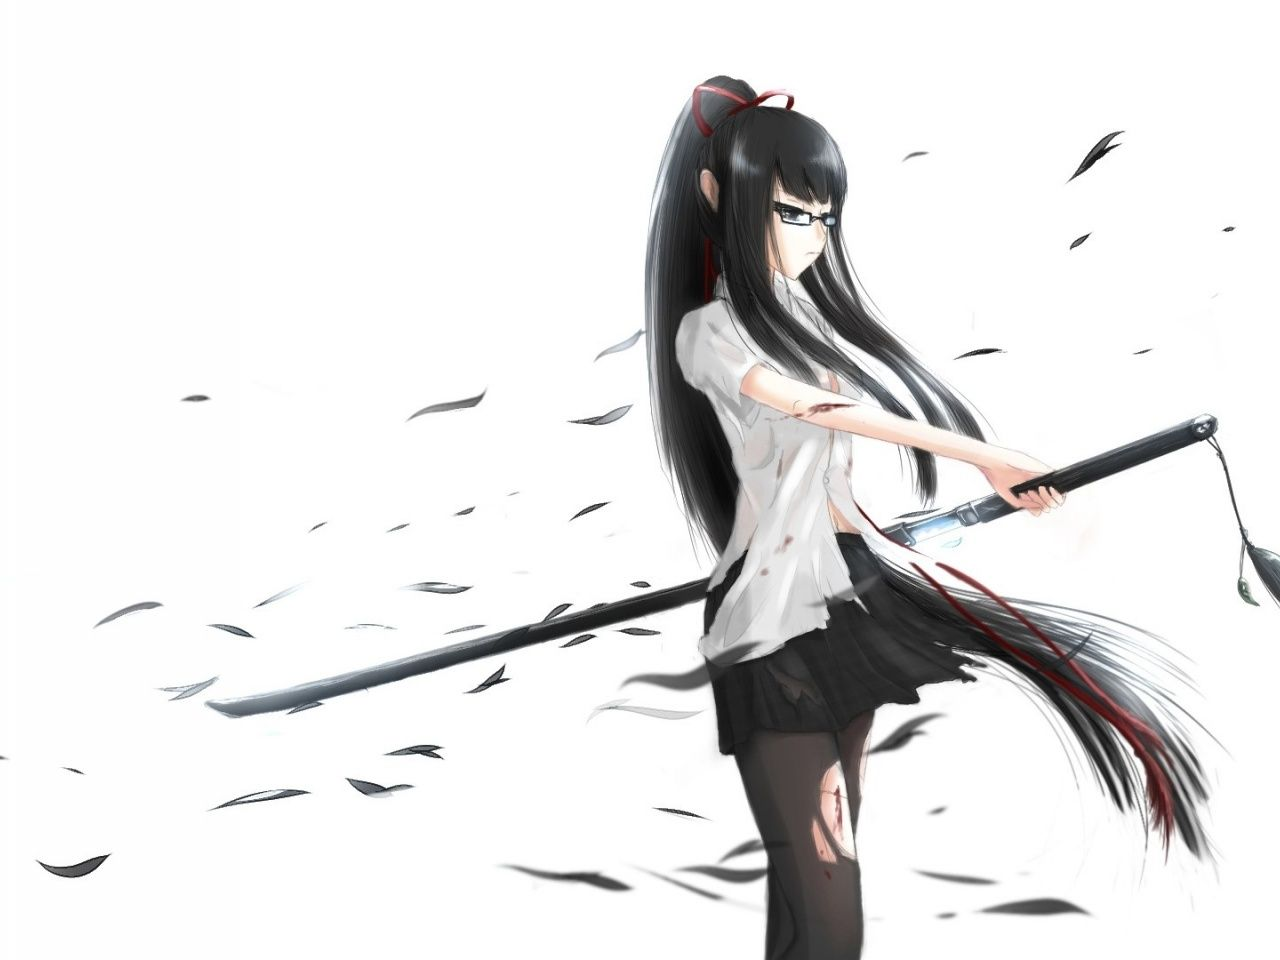 Emotionless Anime Girl Wallpapers - Wallpaper Cave